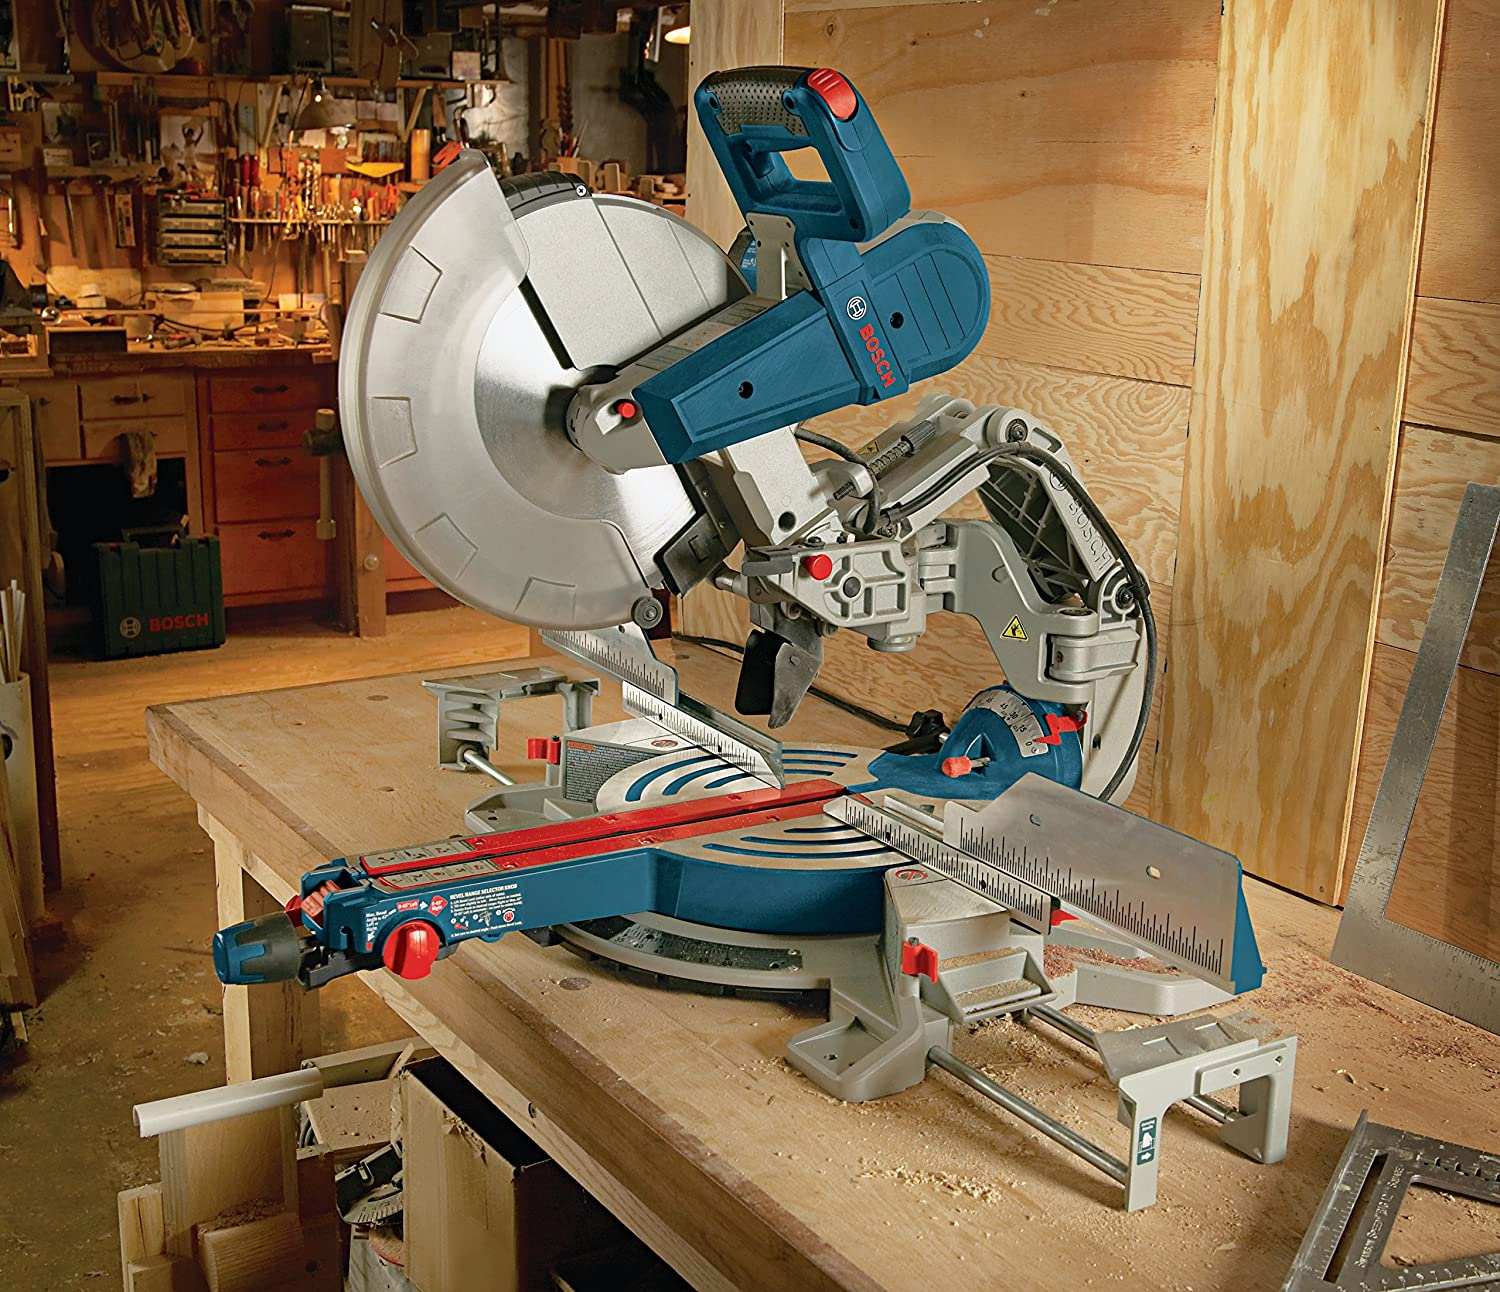 Gcm12sd | 12 in. Dual-bevel glide miter saw | bosch power tools.